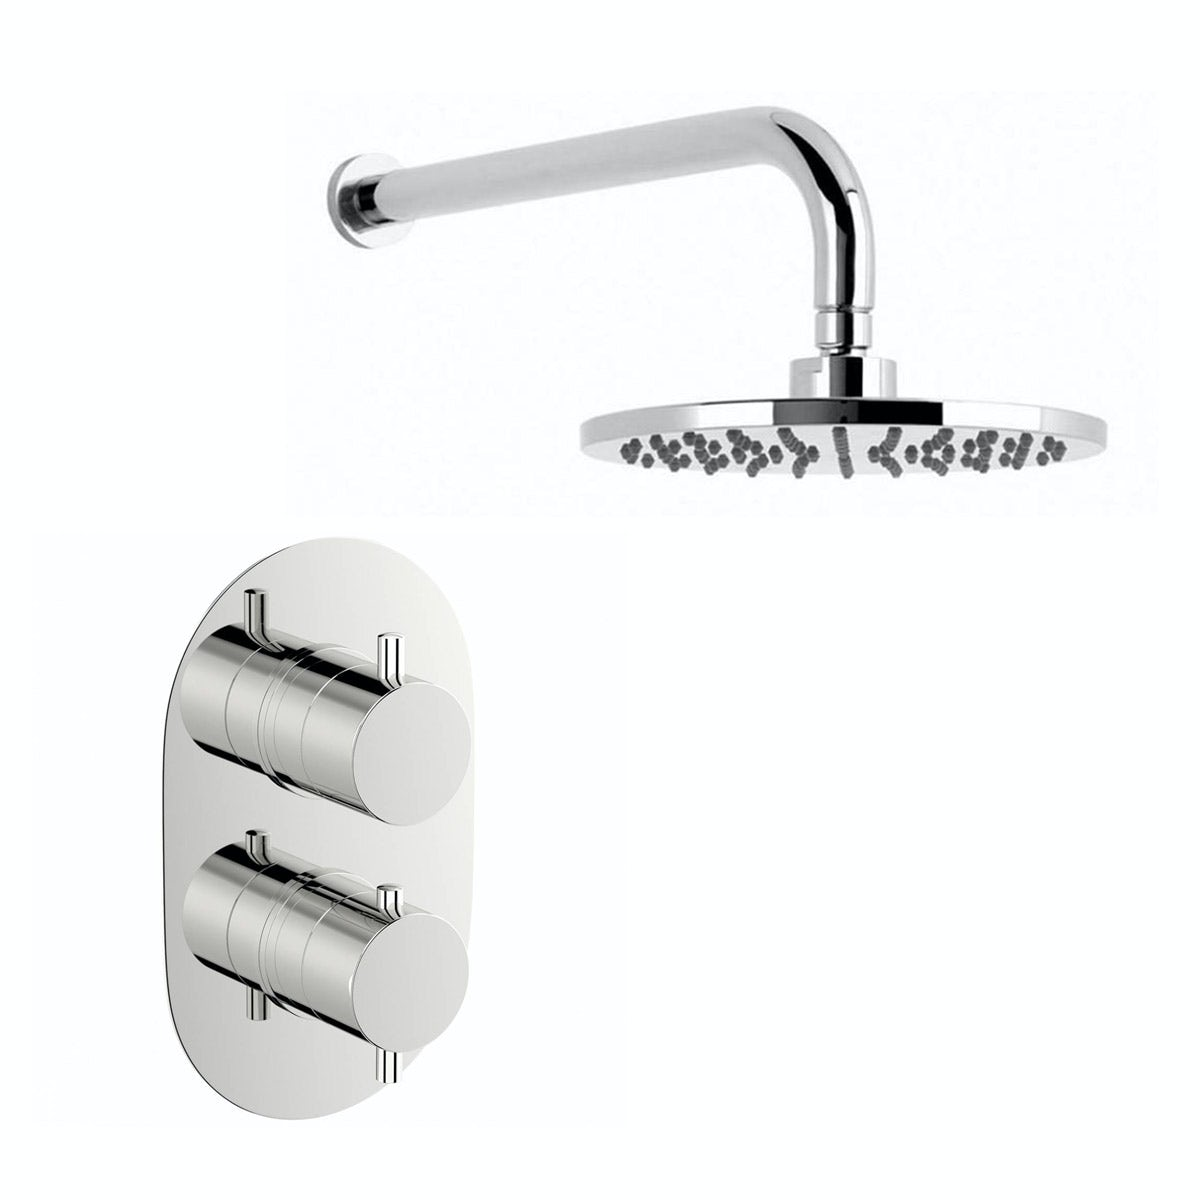 Mode Harrison thermostatic shower valve shower set